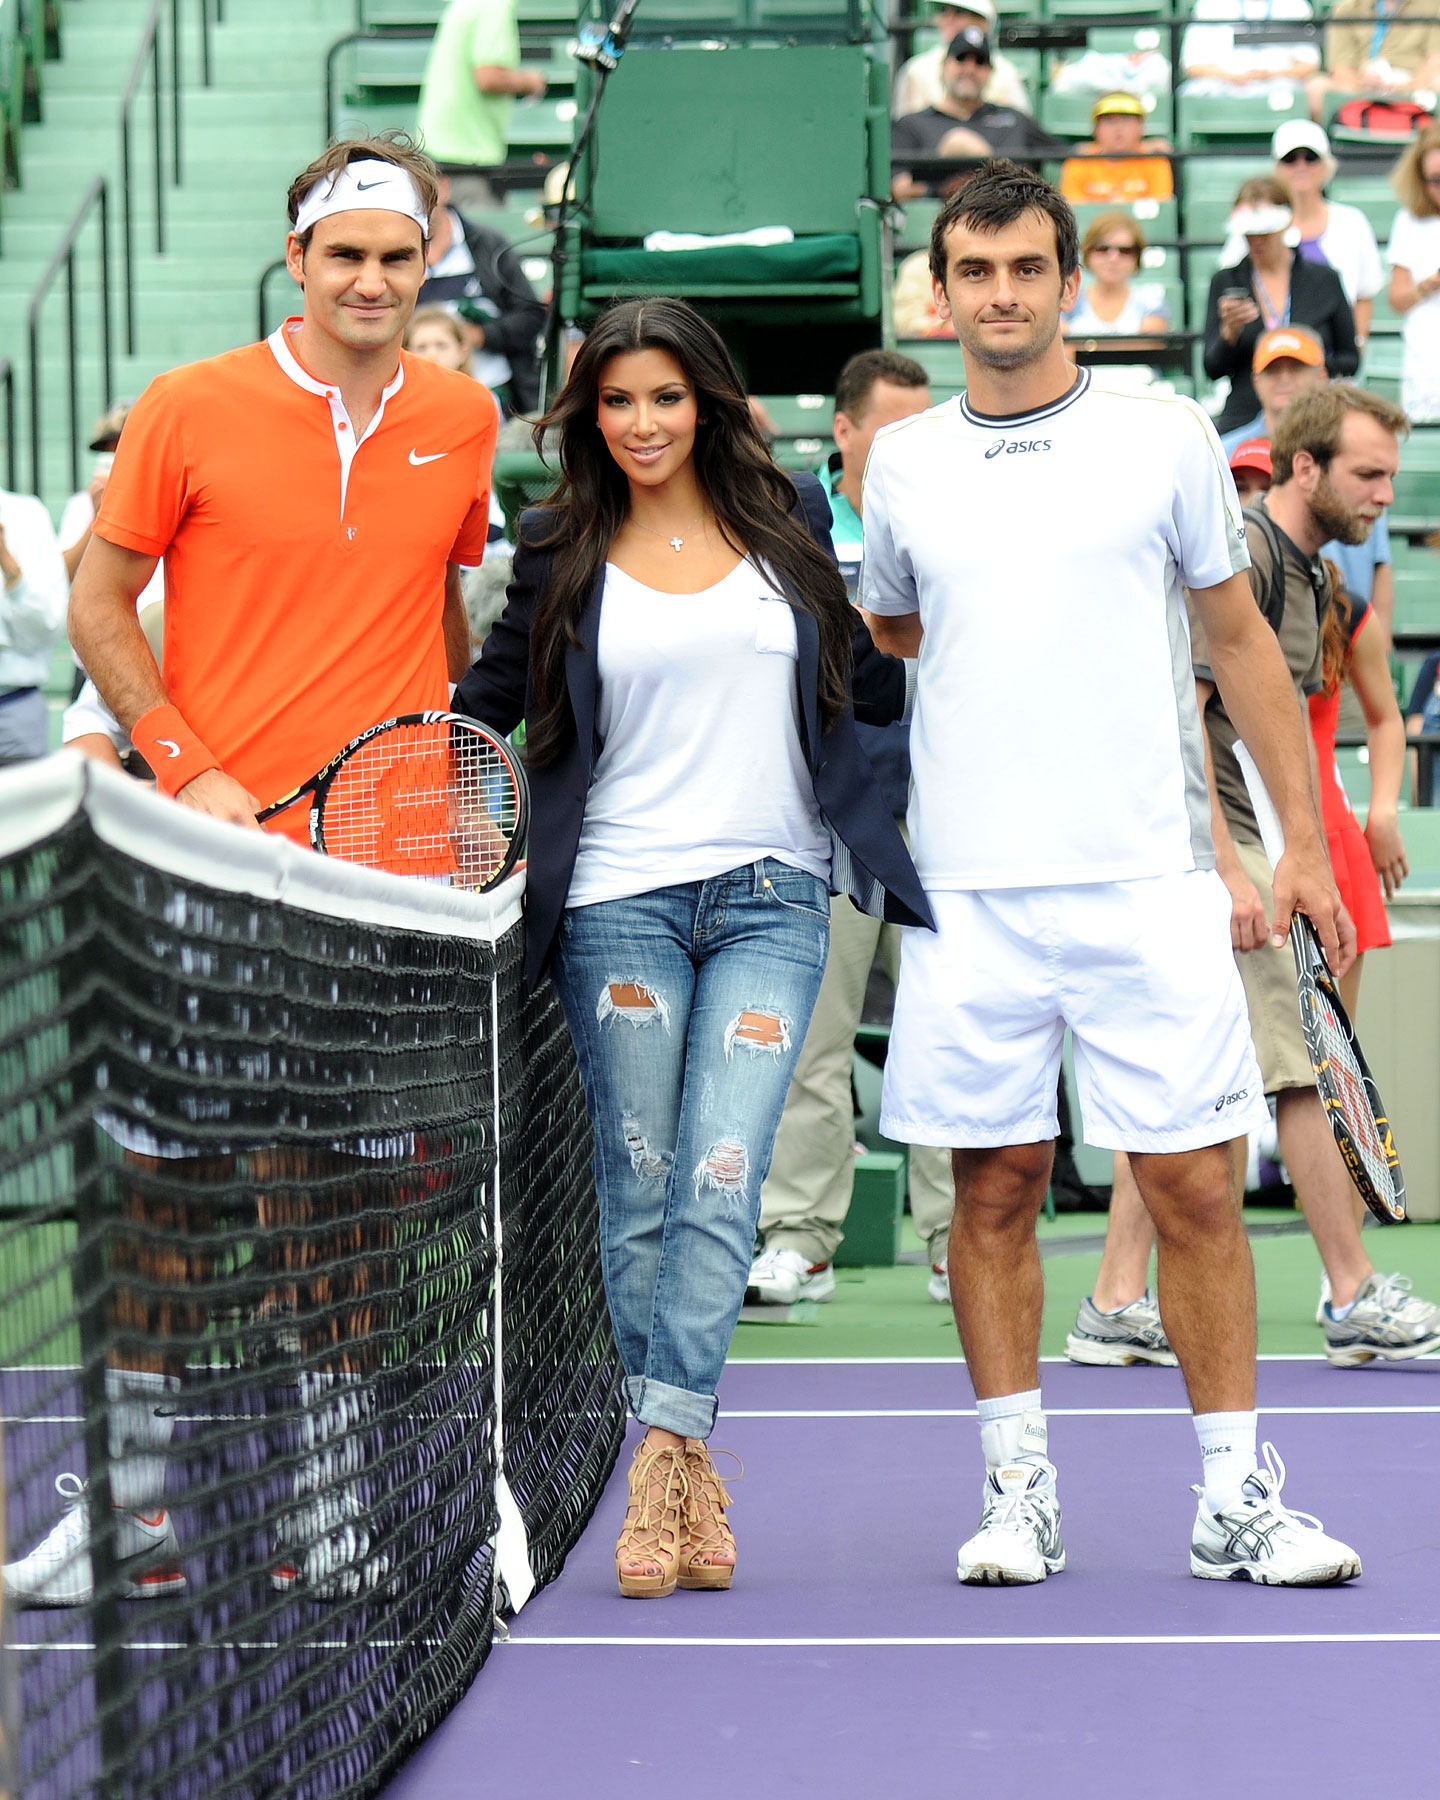 Kim Kardashian Tries Out the Whole Tennis Scene for a Change (PHOTOS)